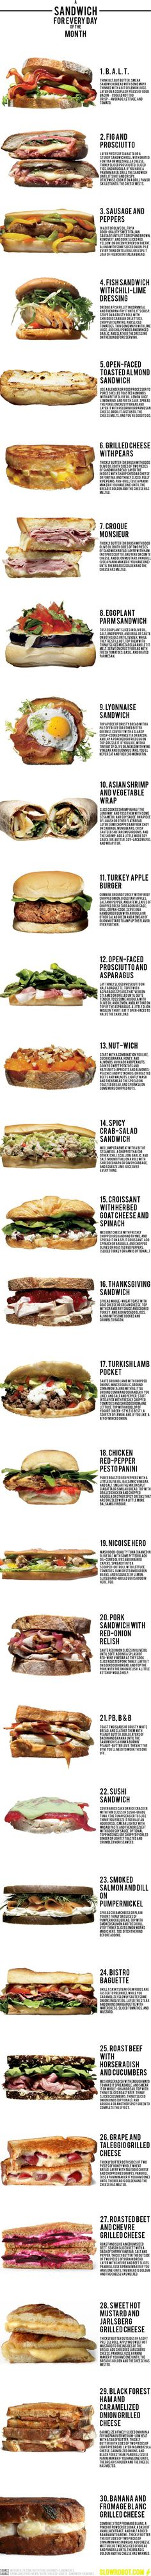 A Sandwich for every day of the month (Infographic)